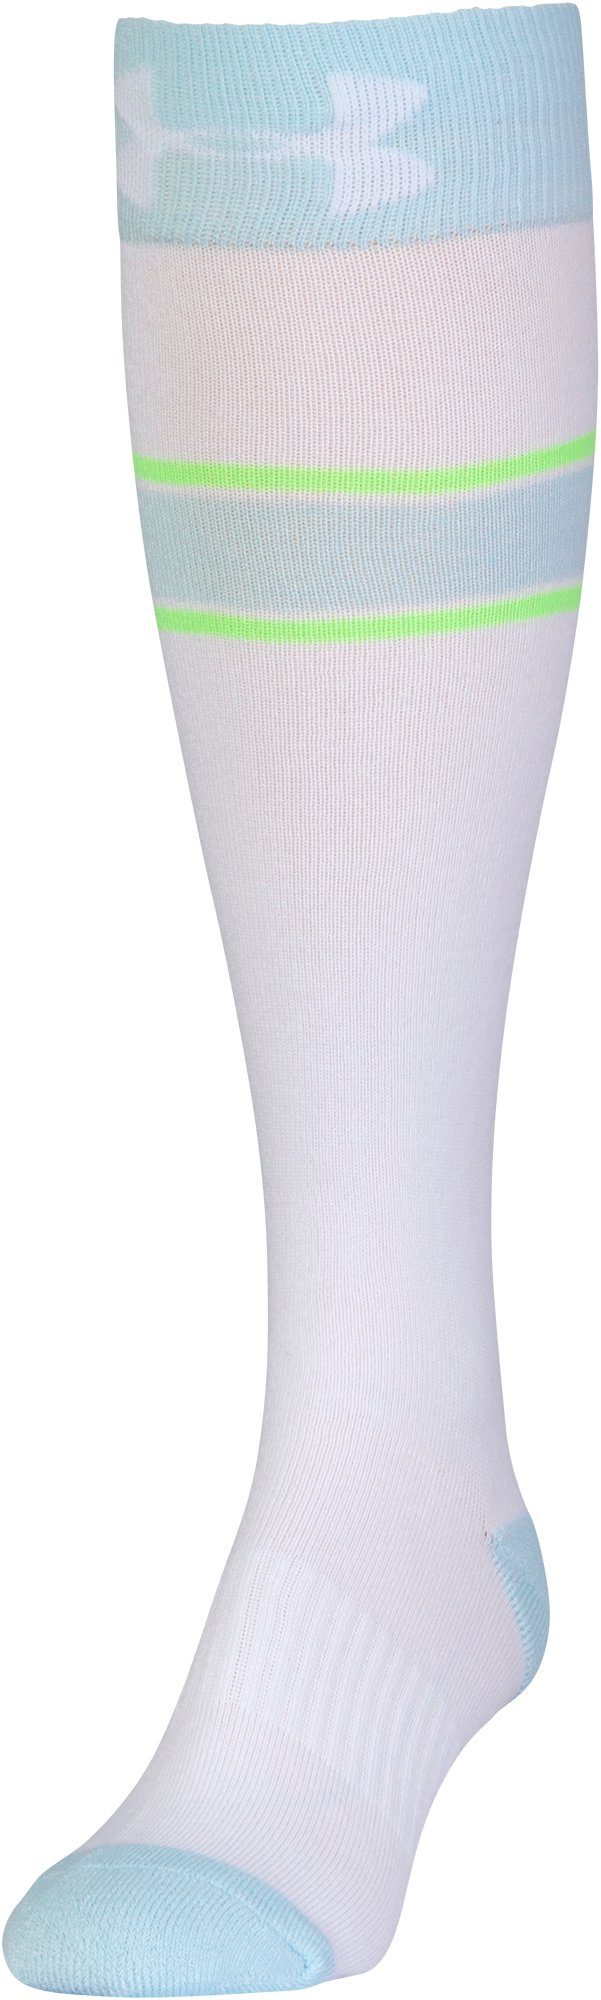 Women's UA Essential Knee High Socks, MAUI